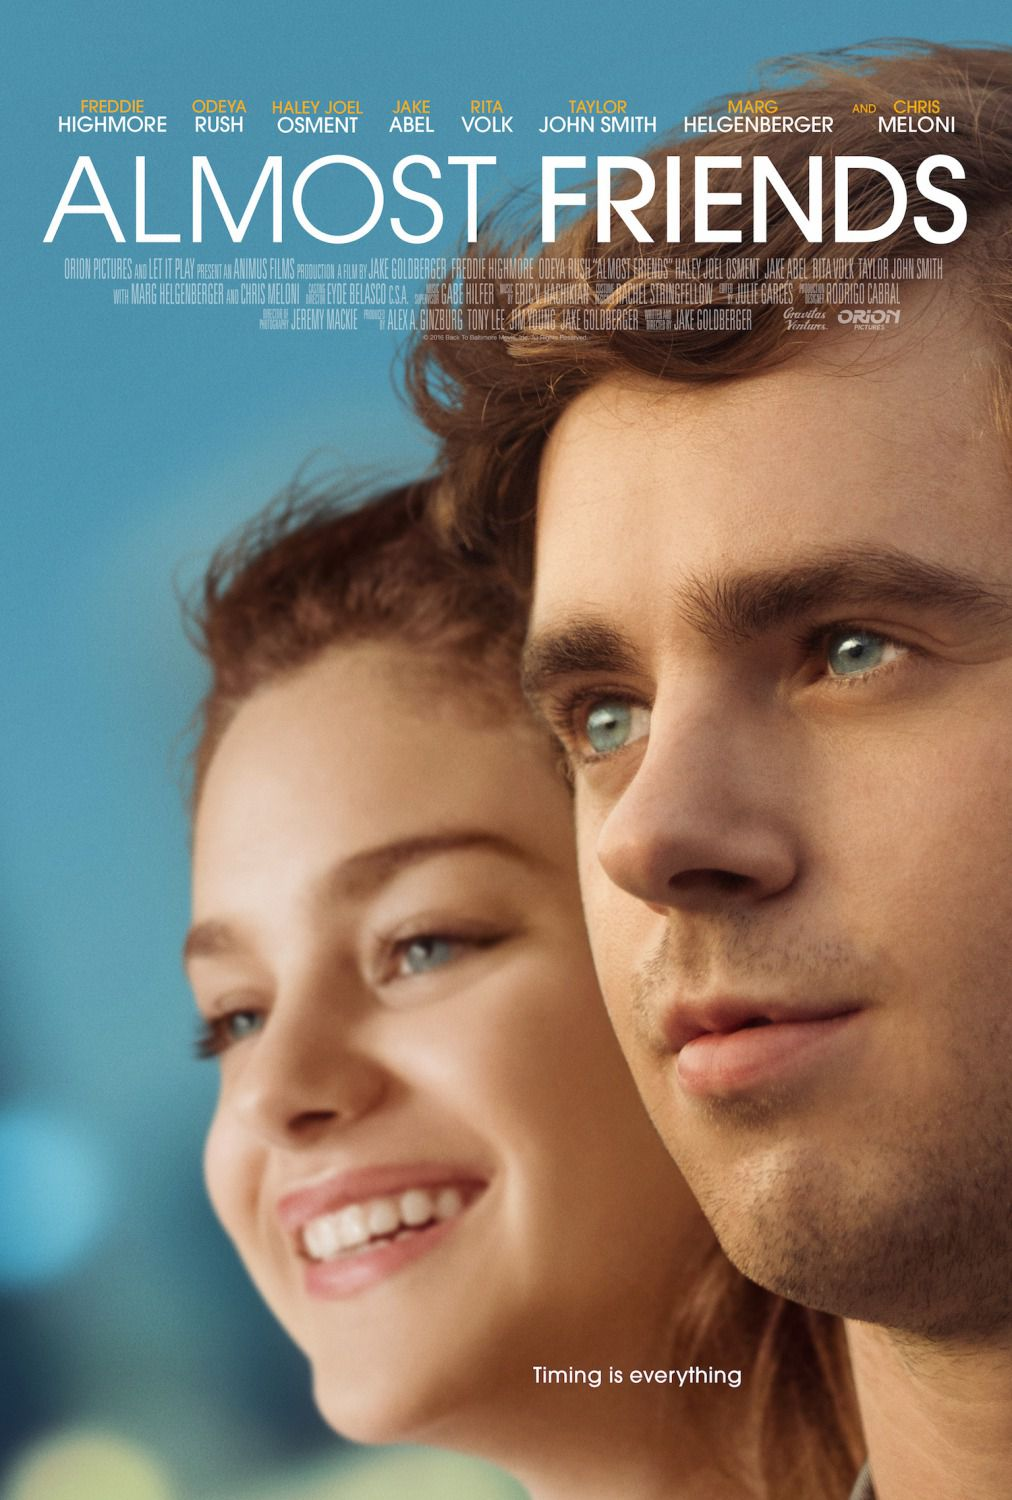 Almost Friends - Freddie Highmore - Odeya Rush - Haley Joel Osment